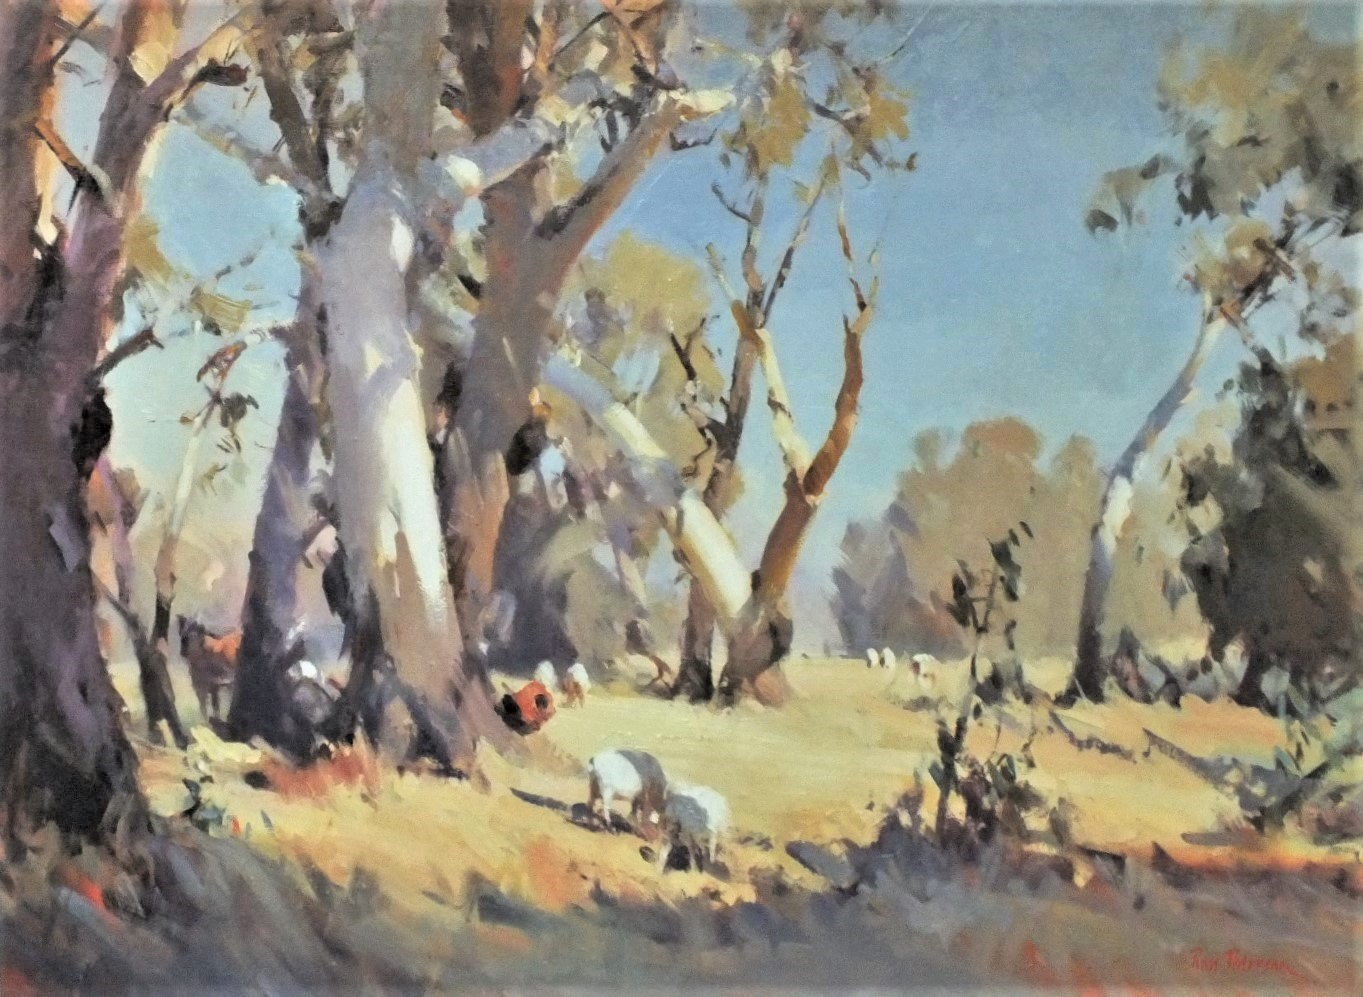 BUSH CLEARING, NORTHERN VICTORIA- OIL 75 X 100 CM. PAINTED 2011